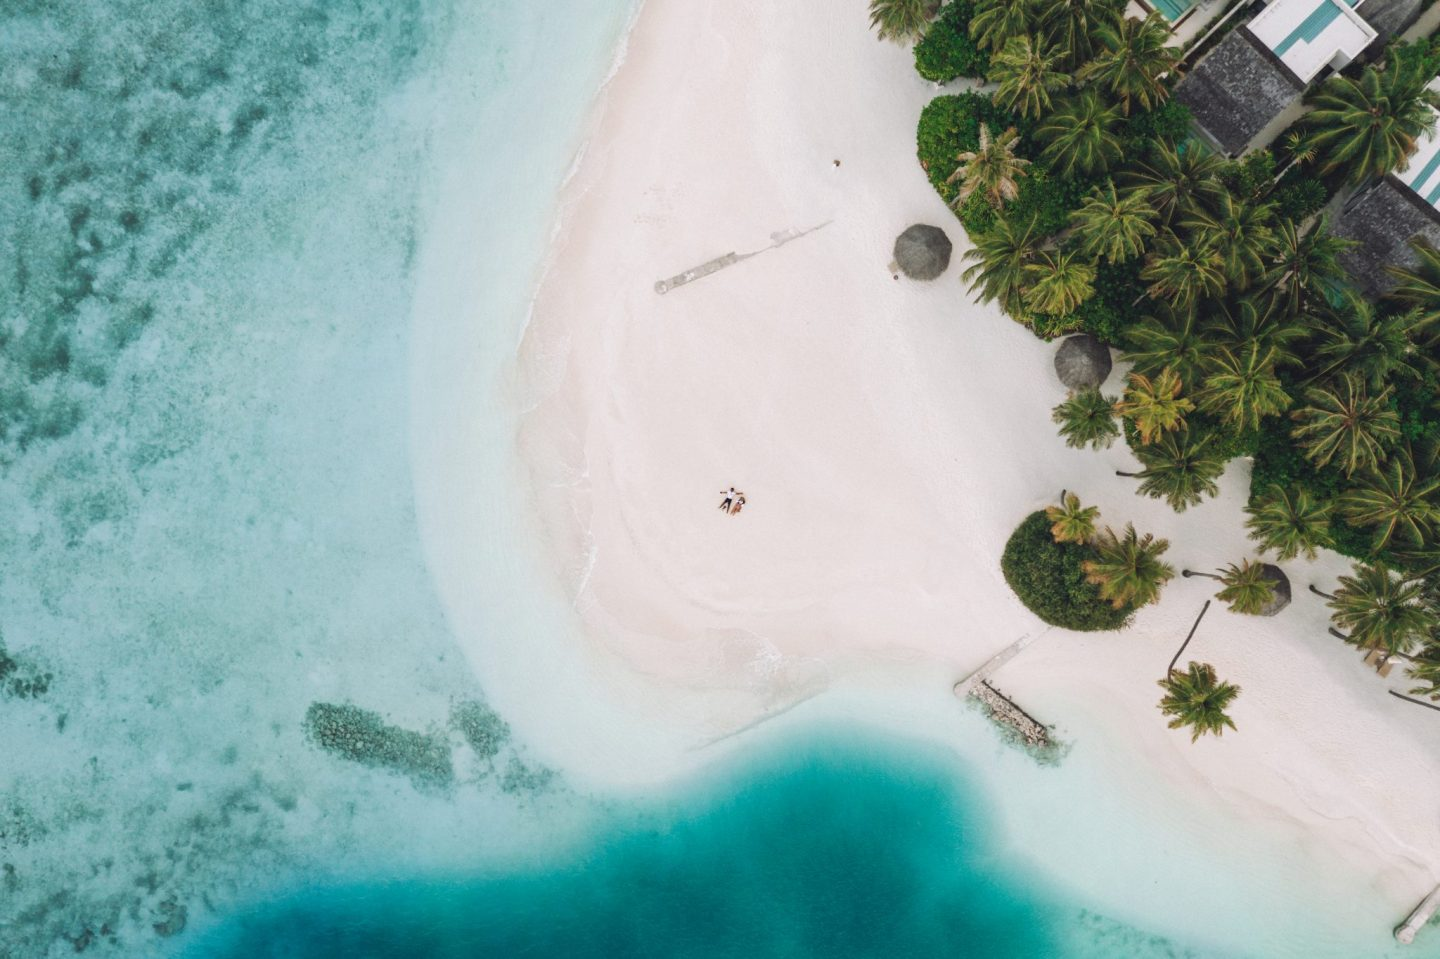 Drone shot of a beach and the ocean in the Maldives